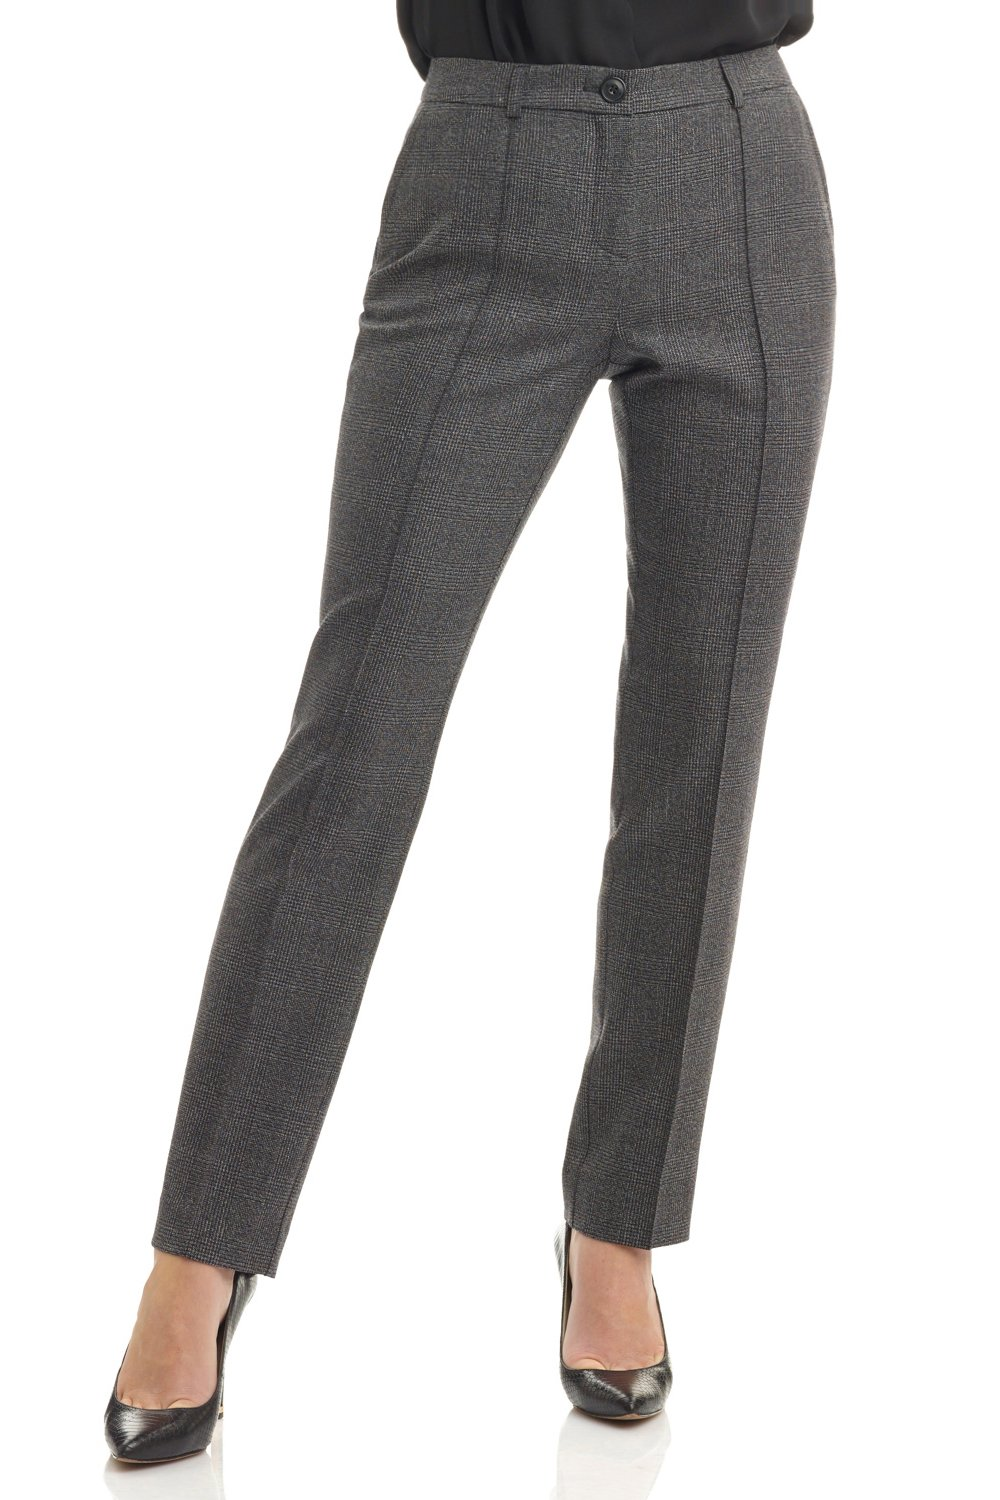 Rekucci Collection Women's Stretch Wool Tailored Pants (16,Grey Glencheck)